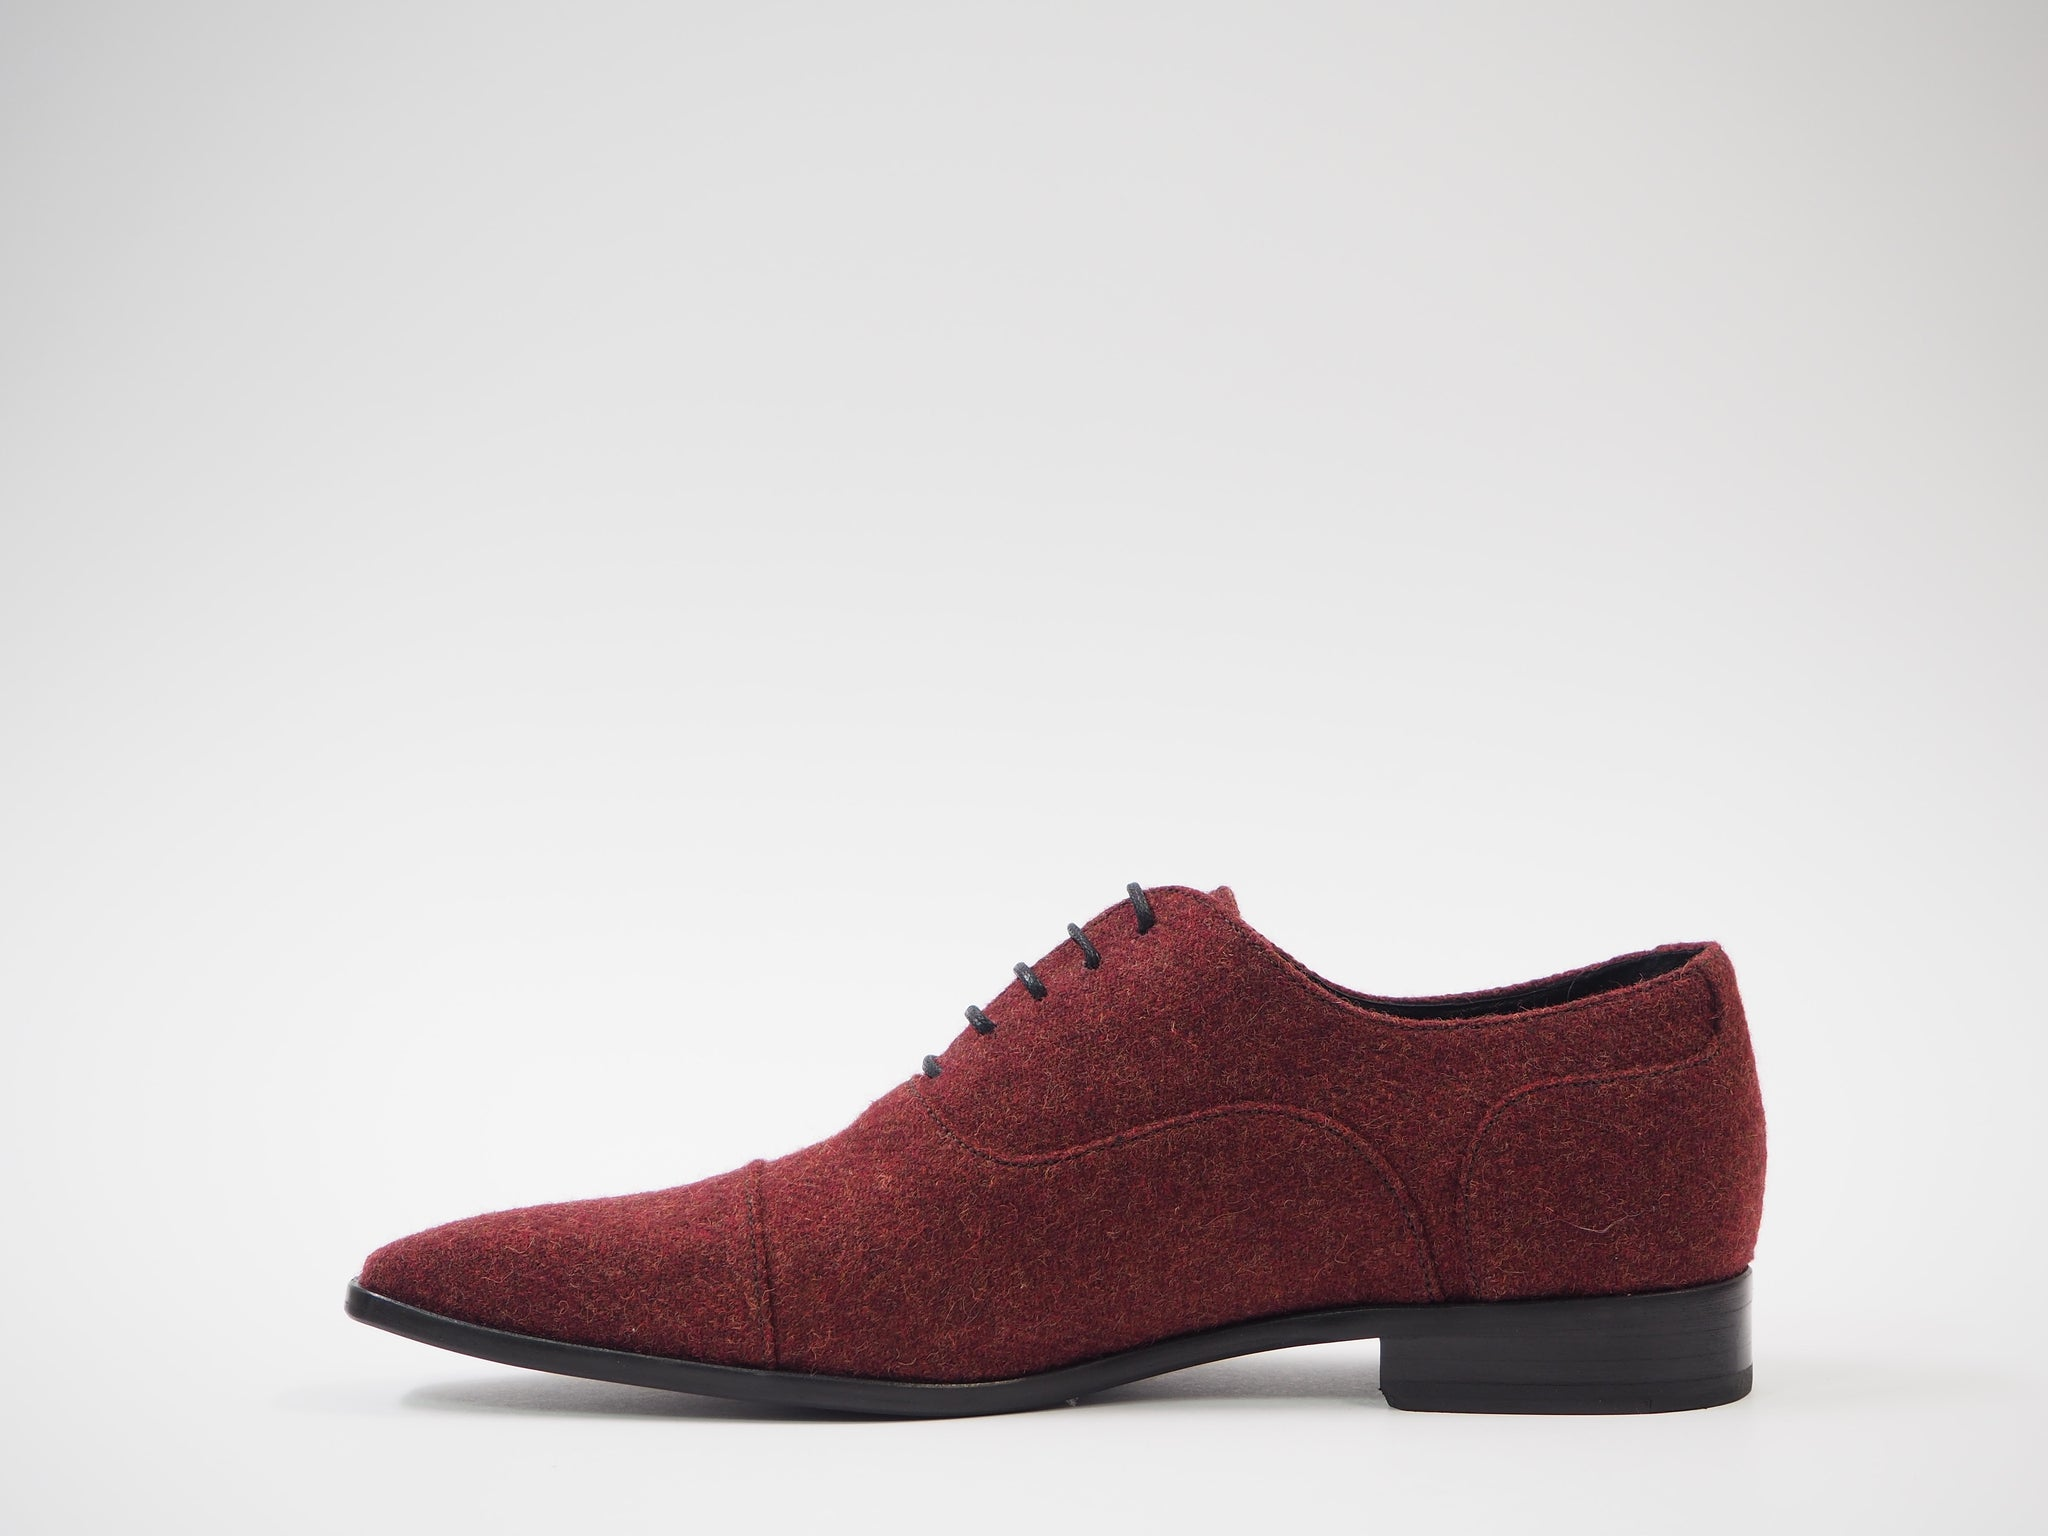 Size 42 - Maroon Tweed Oxford + Belt